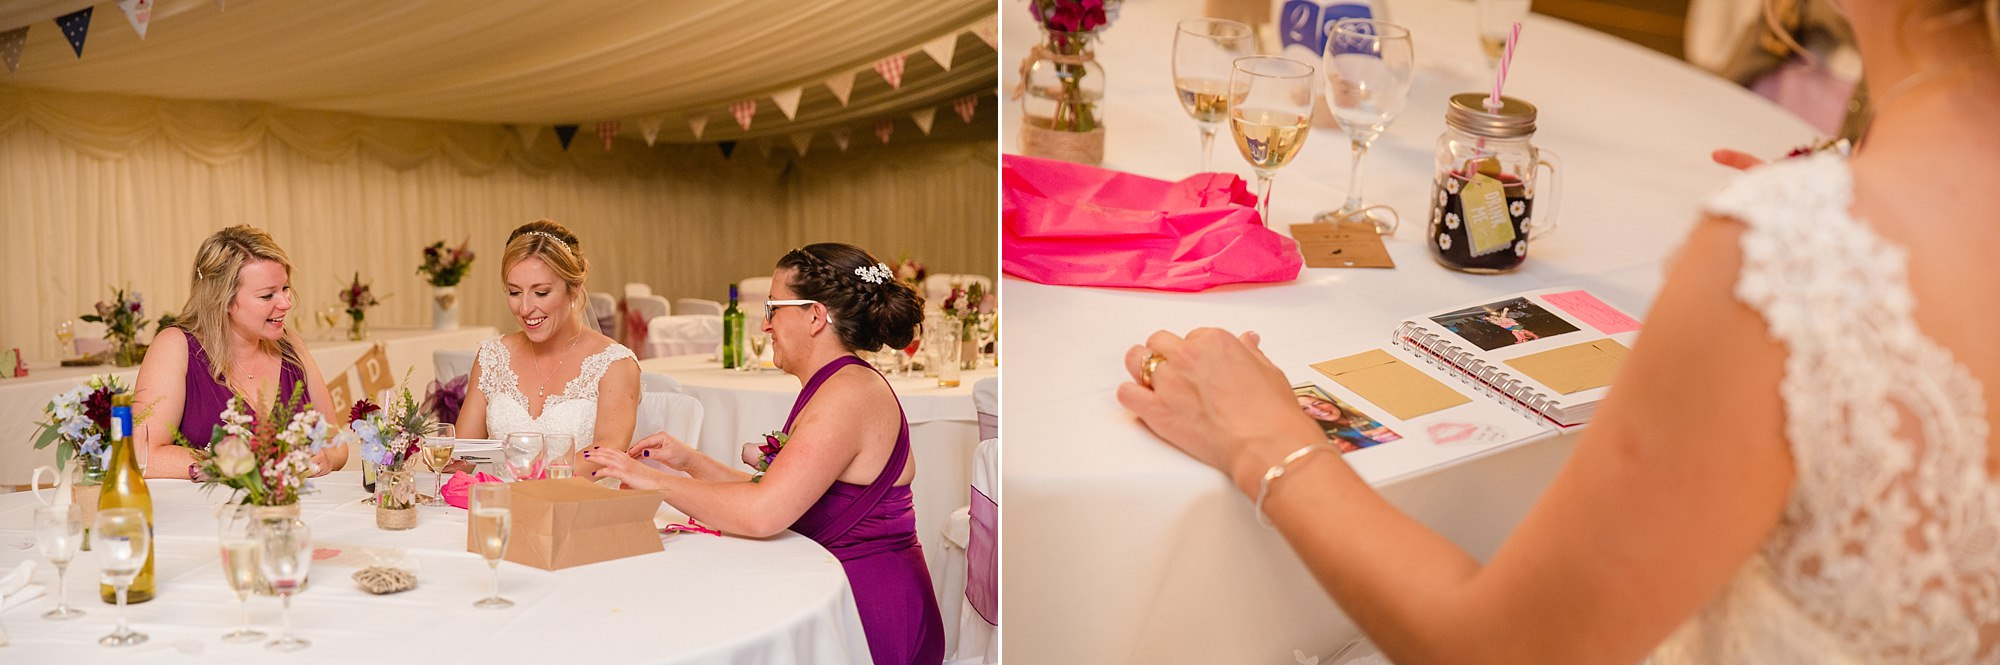 A fun wedding at Plas Isaf - portrait of bride with gifts